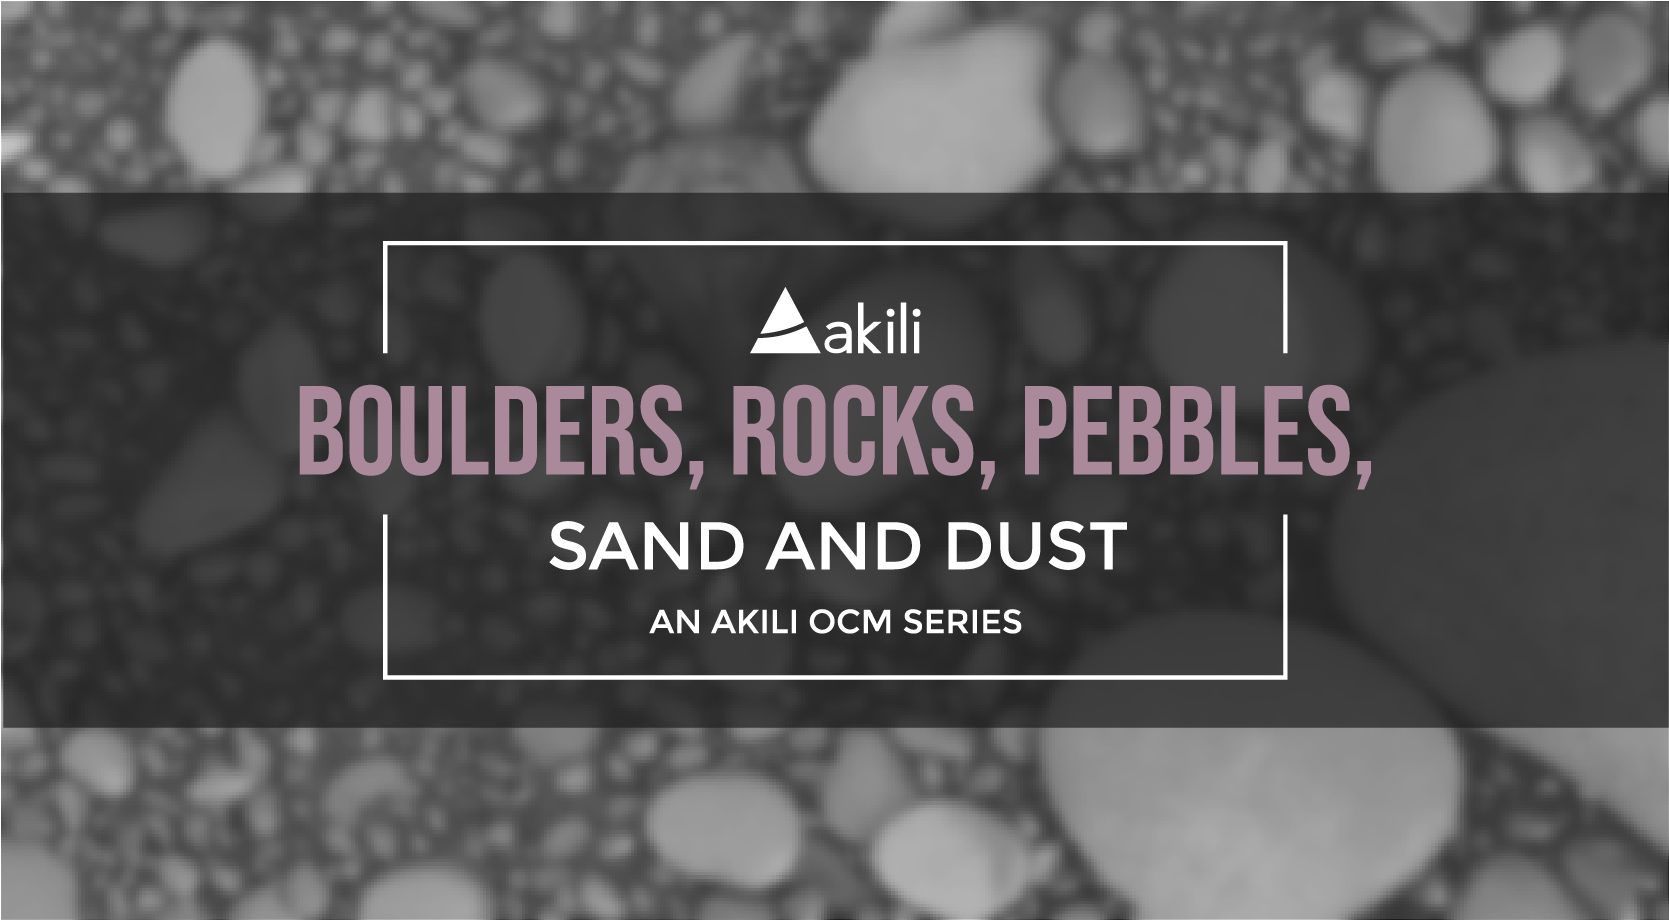 Boulders, Rocks, Pebbles, Sand and Dust